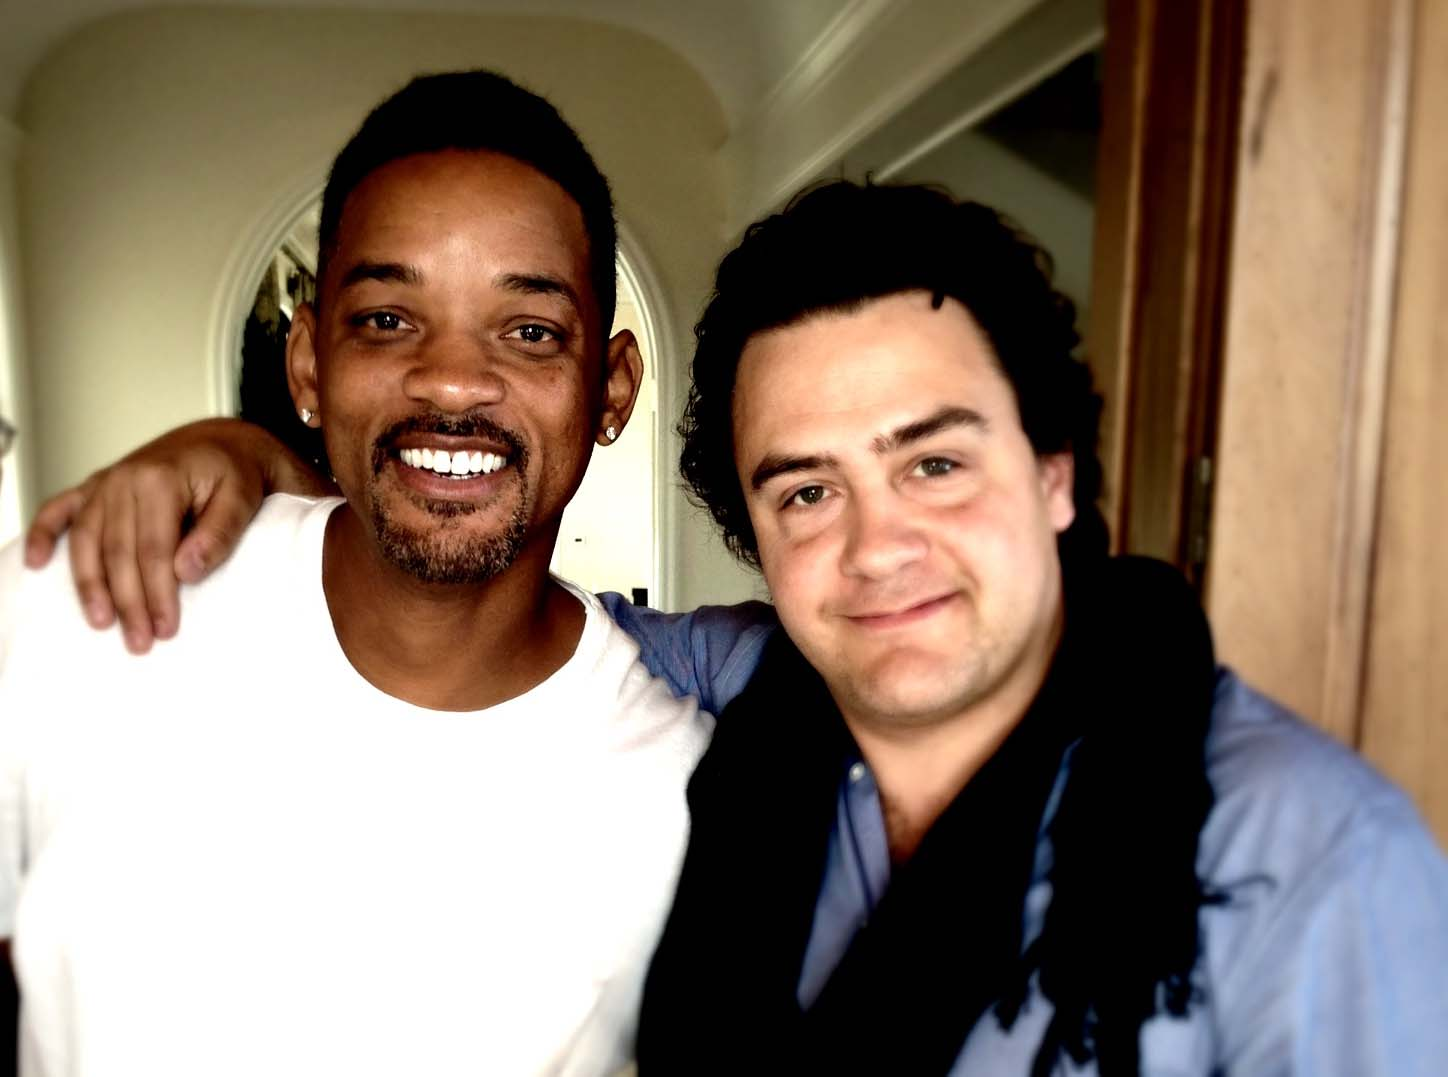 With Will Smith